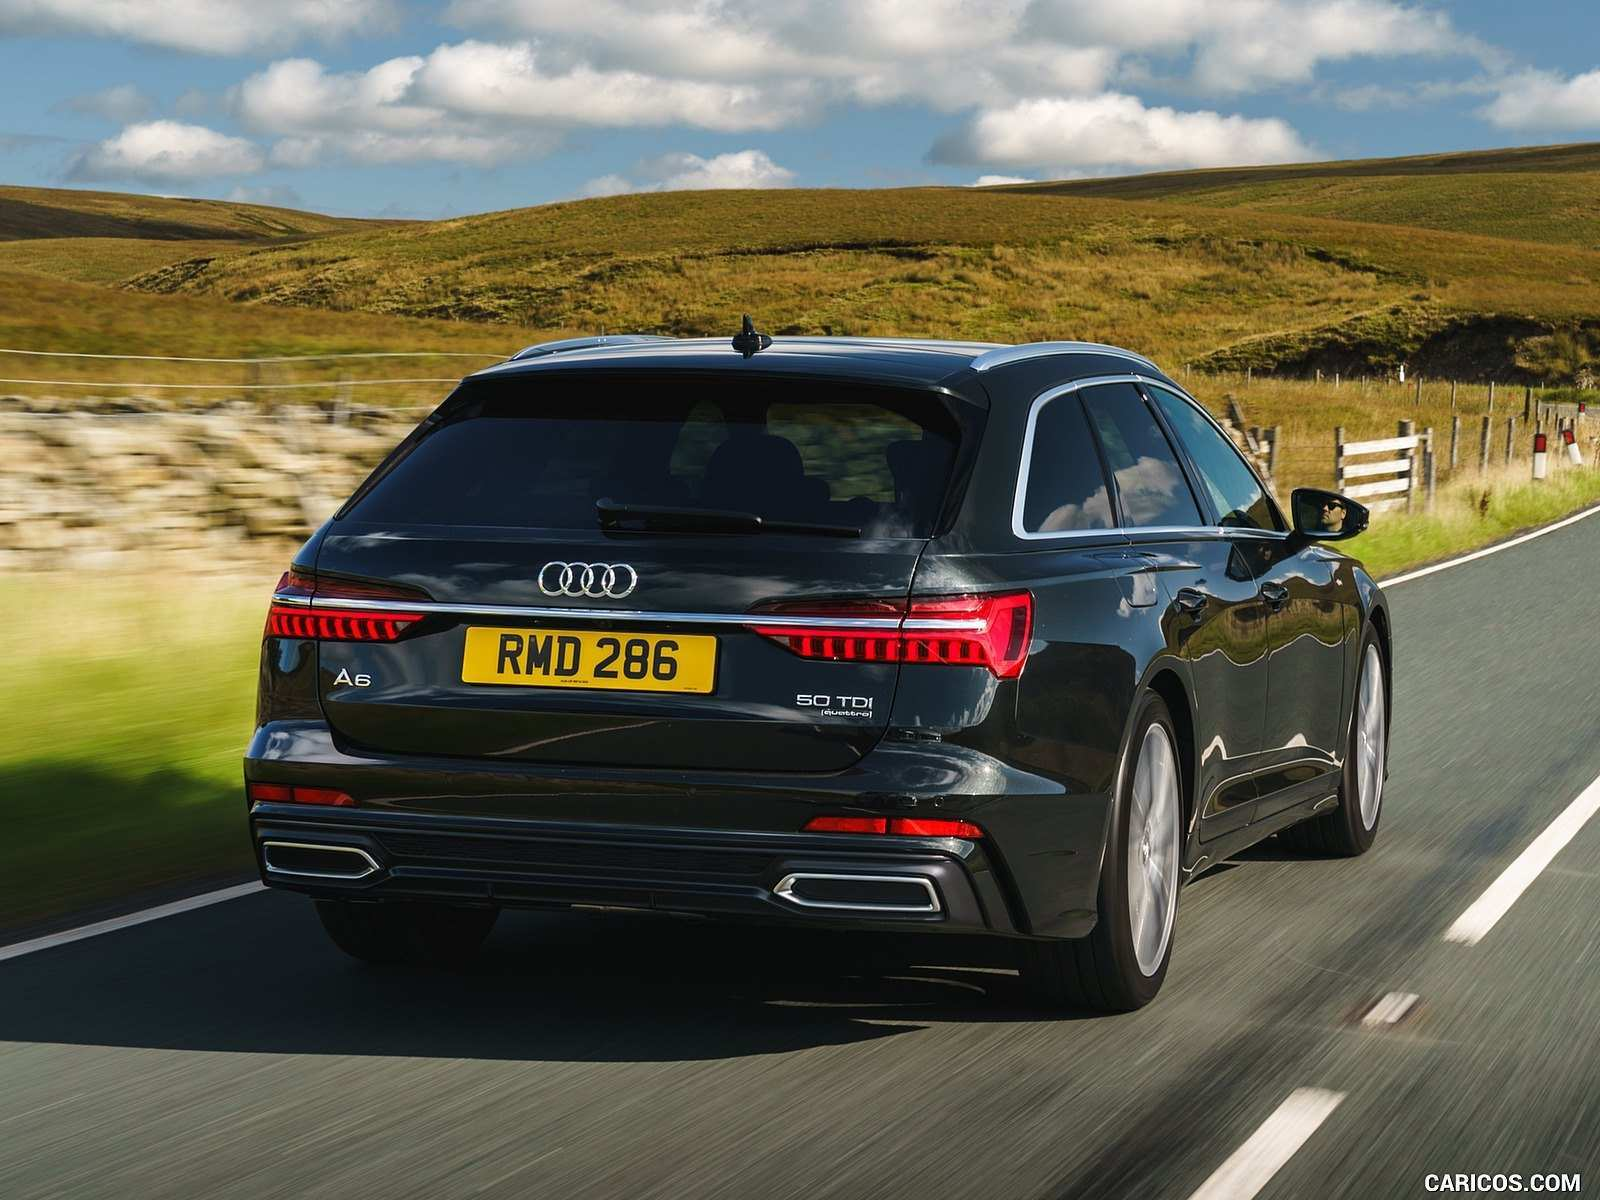 46 New New Audi 2019 Uk Exterior Price and Review with New Audi 2019 Uk Exterior